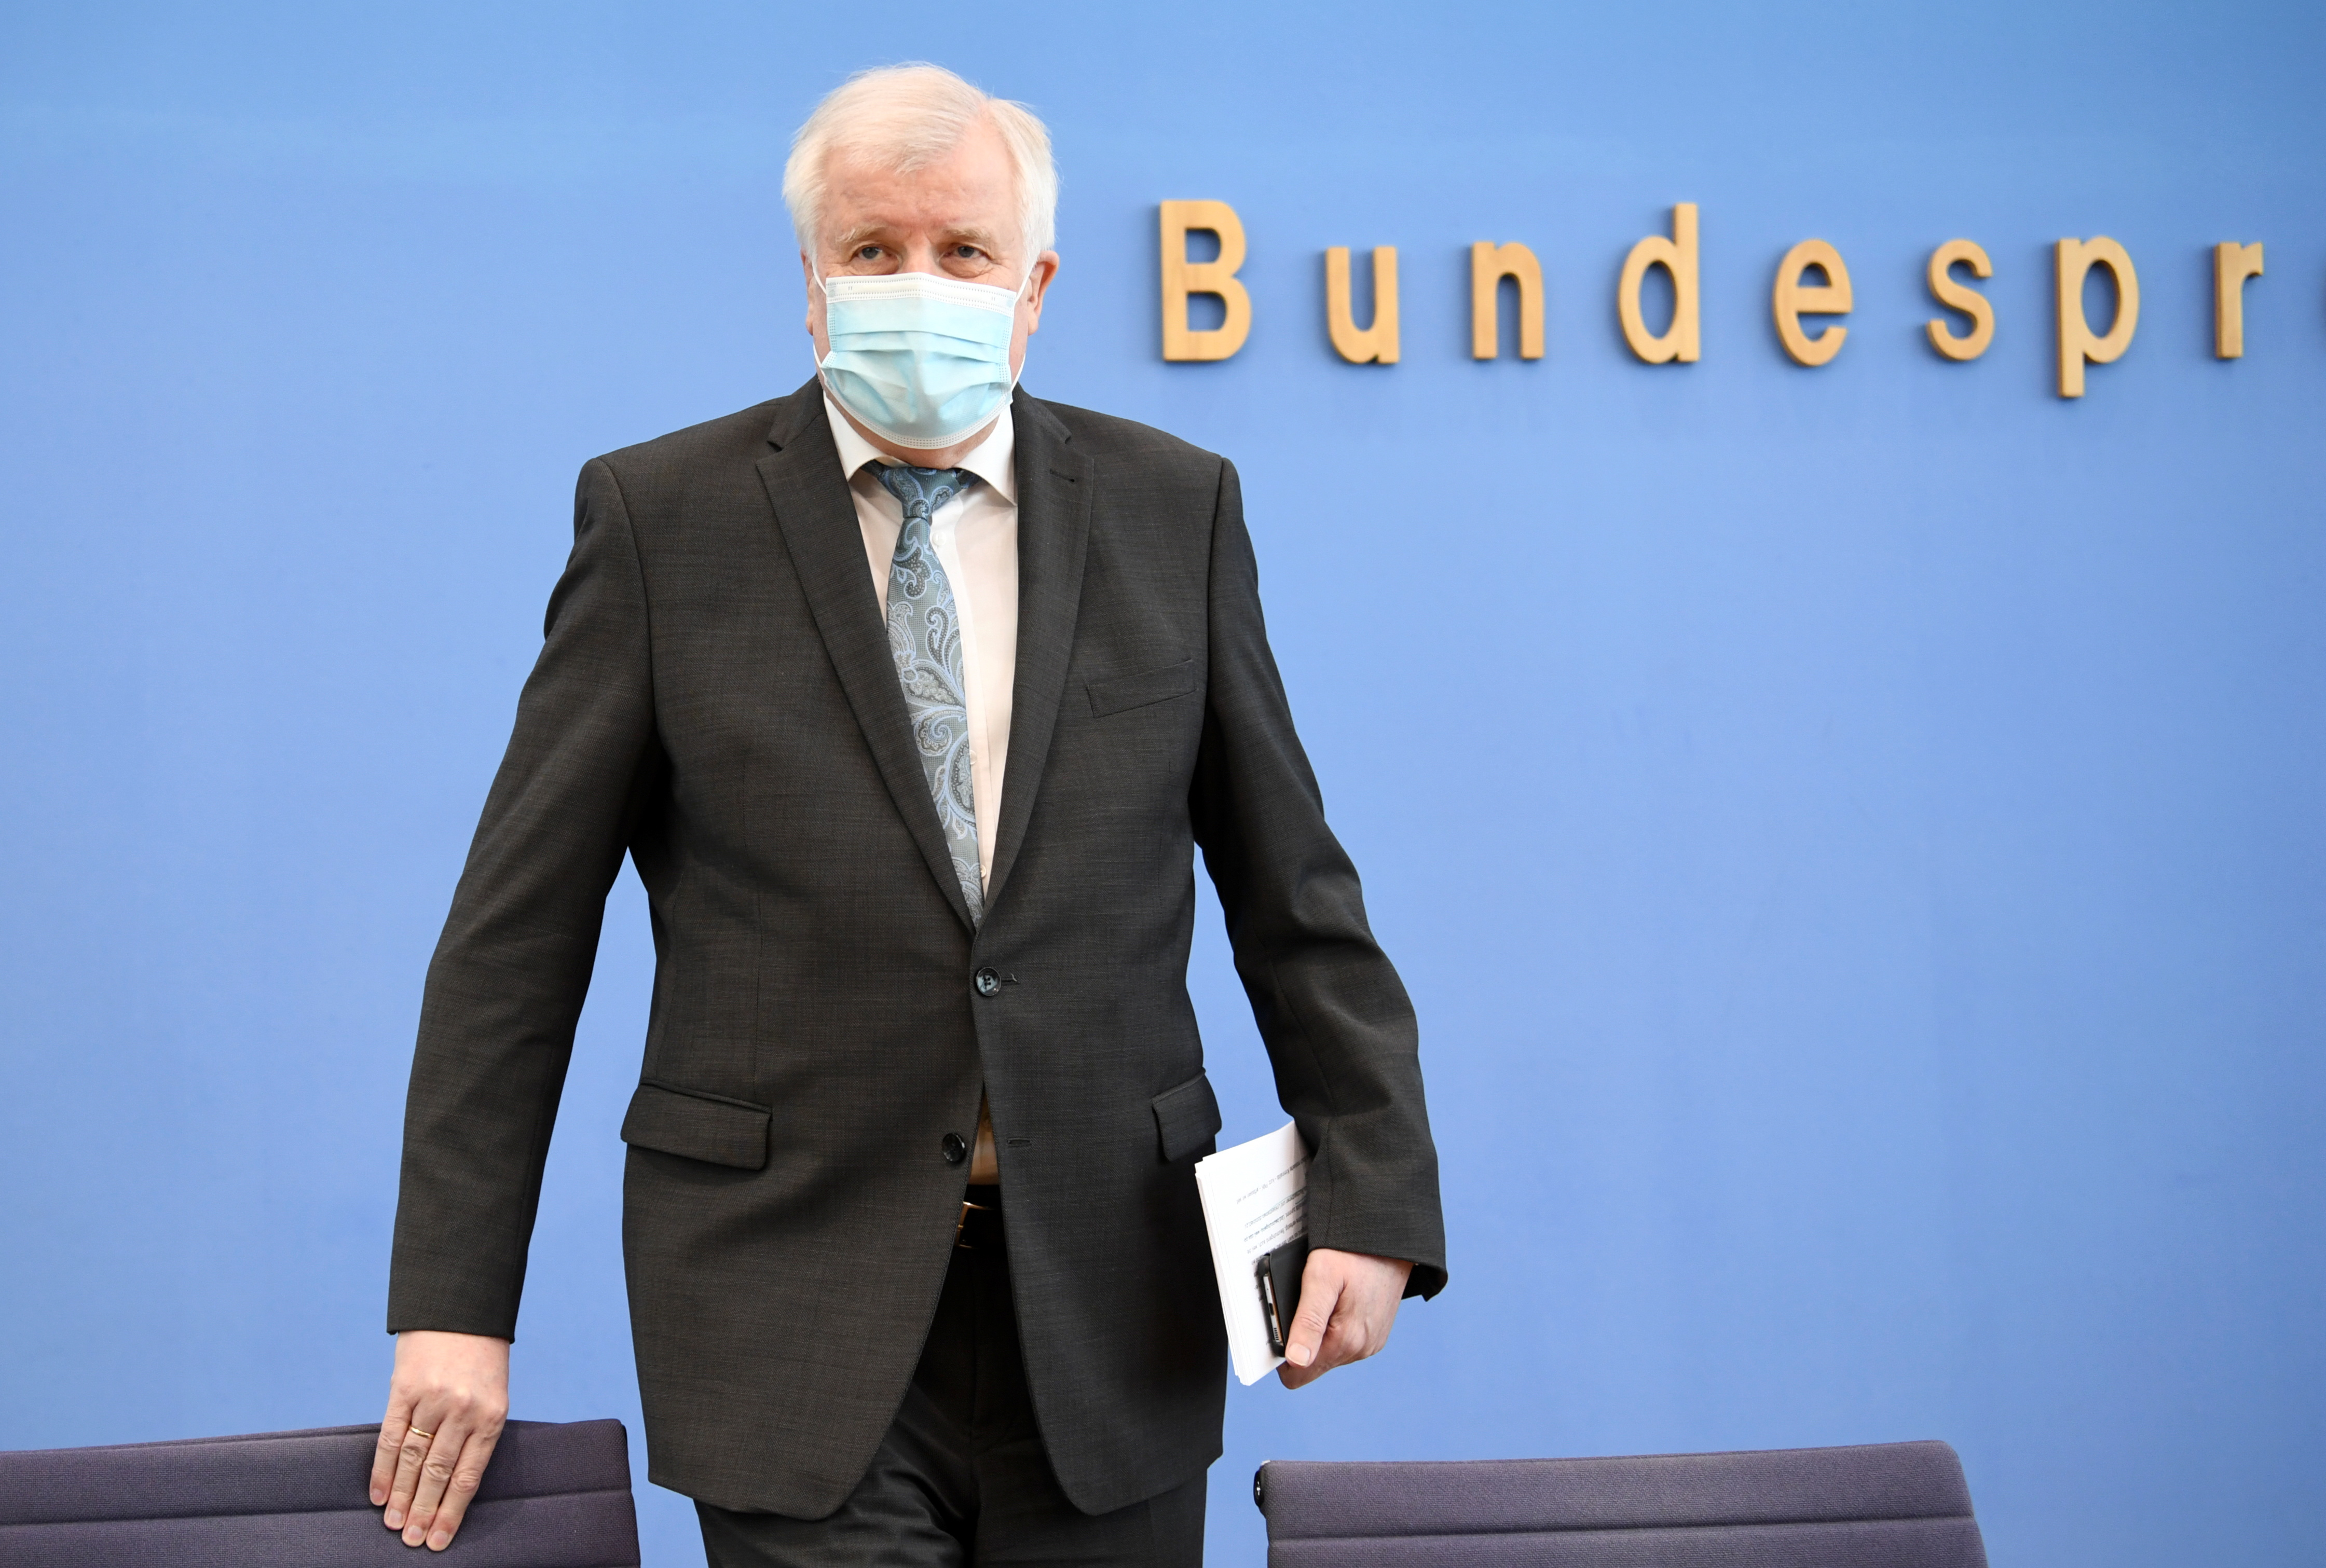 German Interior Minister Horst Seehofer takes off his mask before attending a news conference on politically motived crimes in Germany, in Berlin, Germany May 4, 2021. REUTERS/Annegret Hilse/Pool